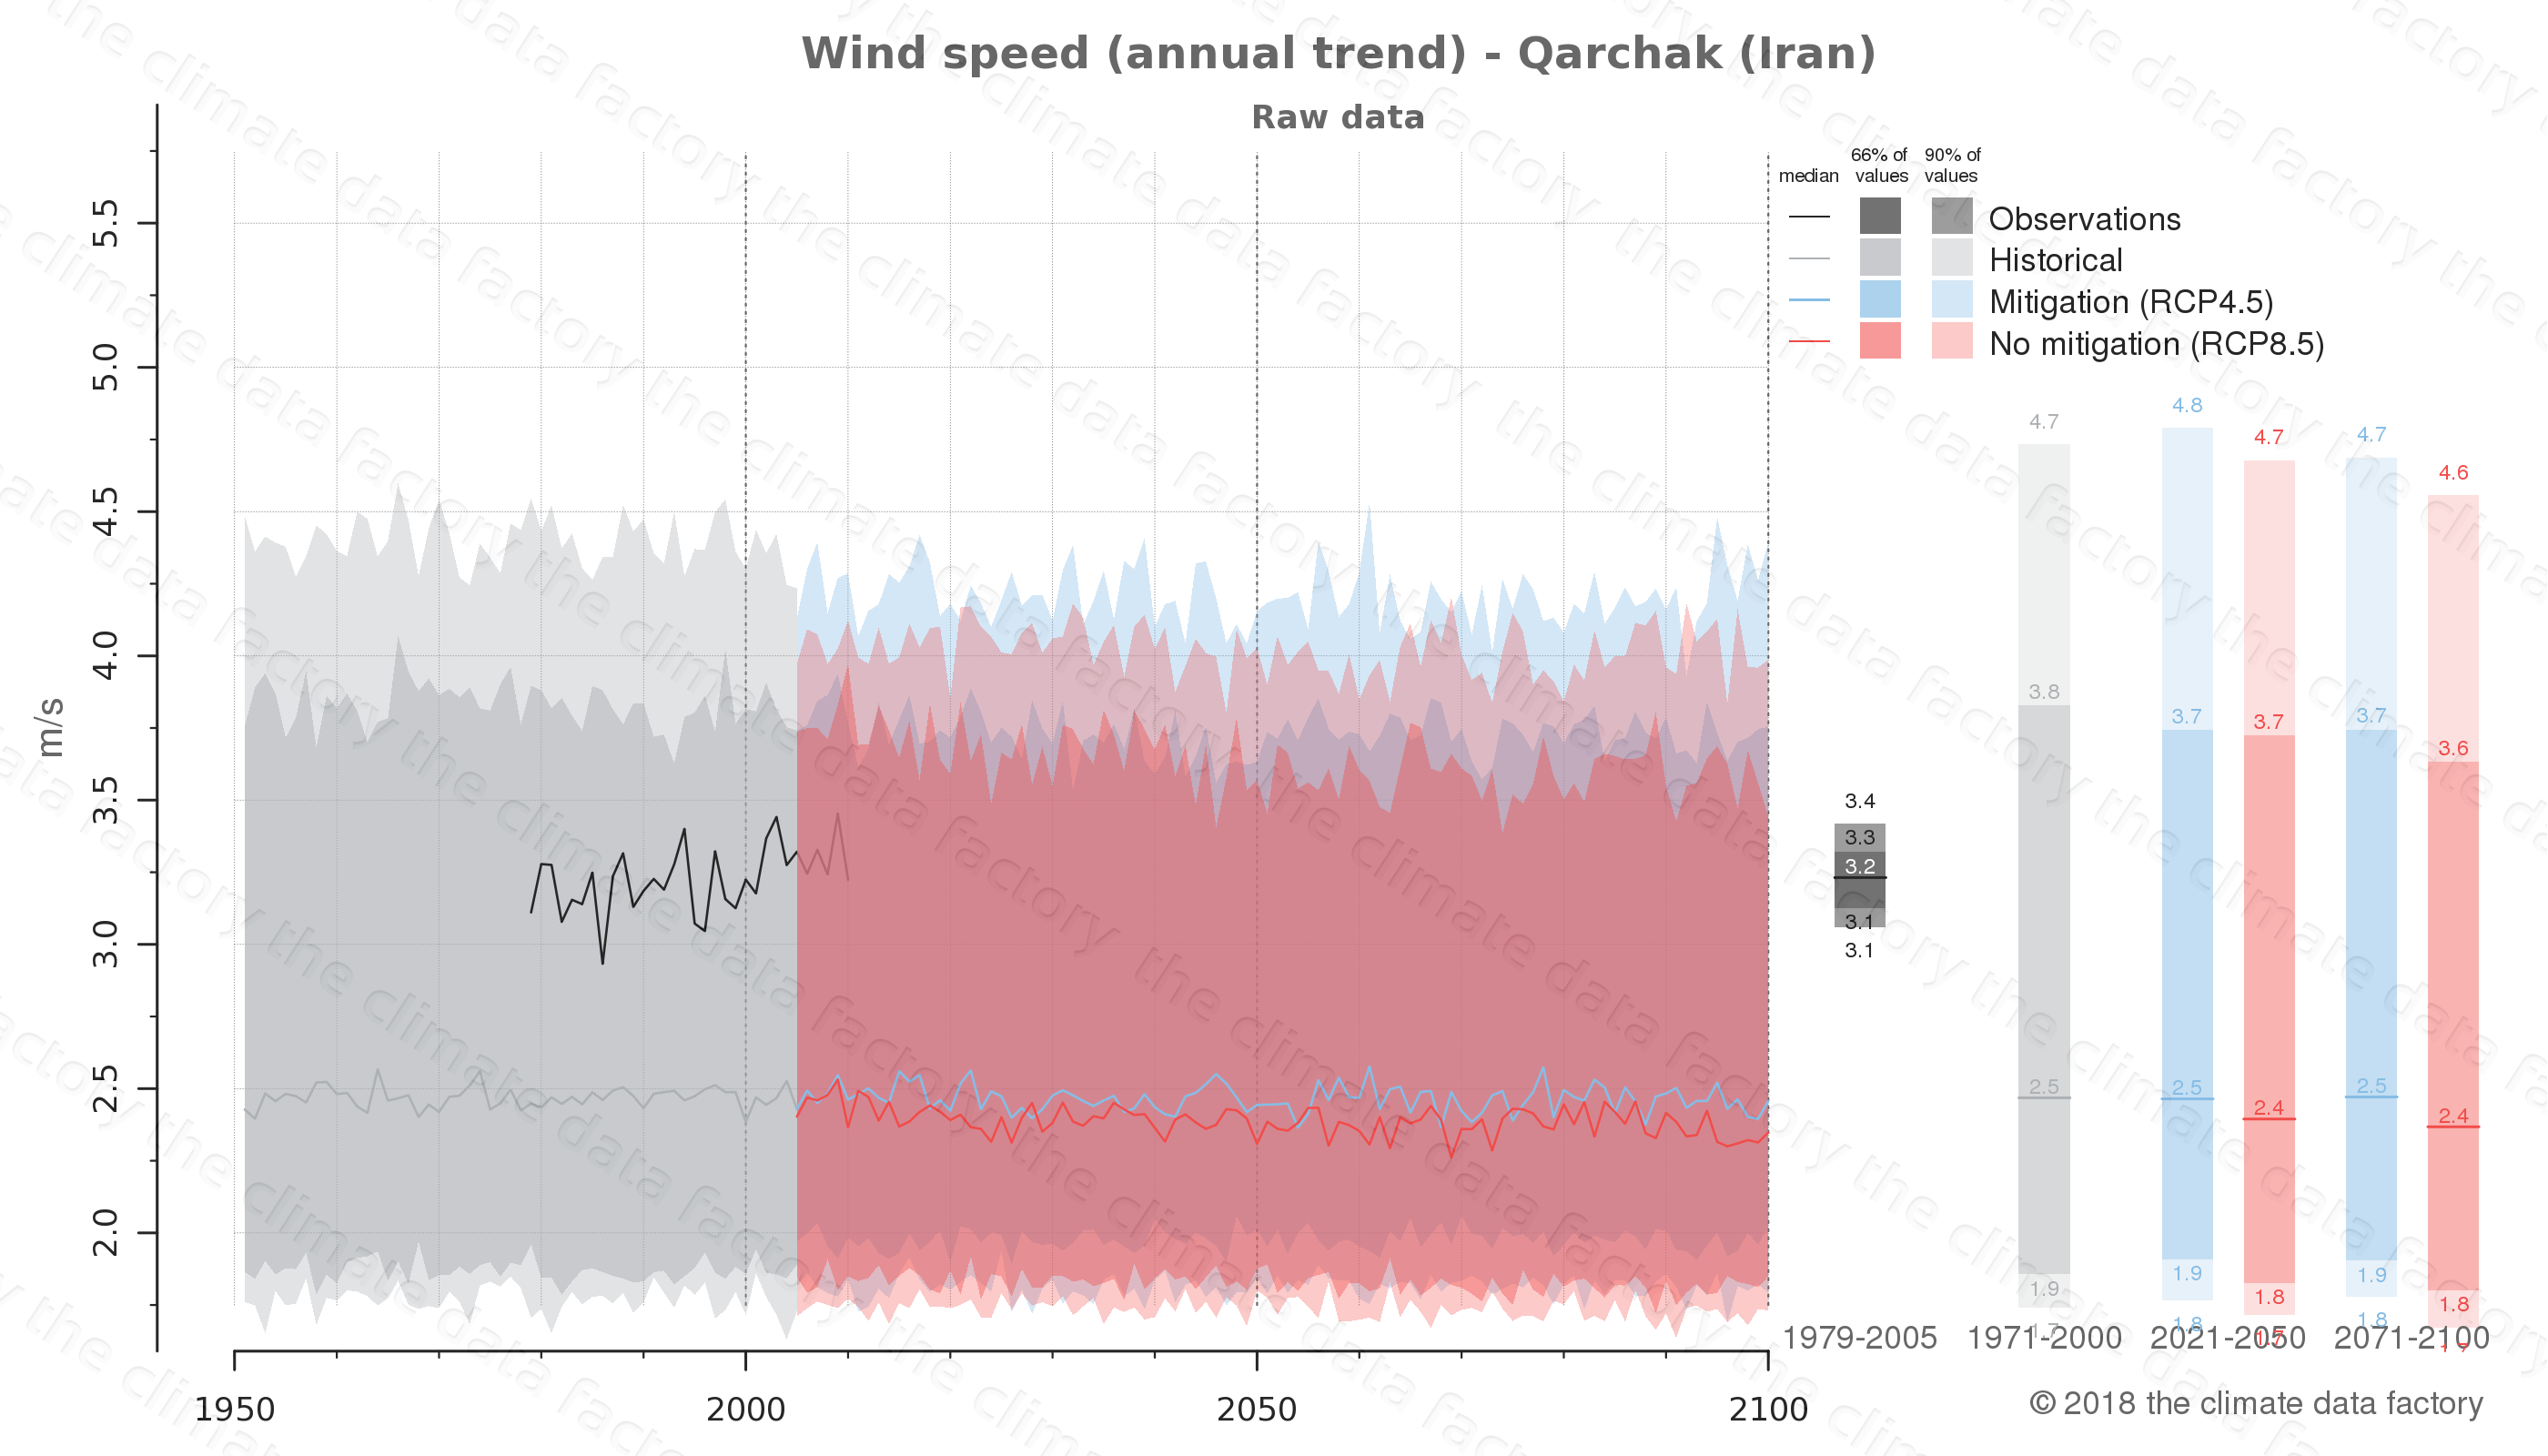 climate change data policy adaptation climate graph city data wind-speed qarchak iran